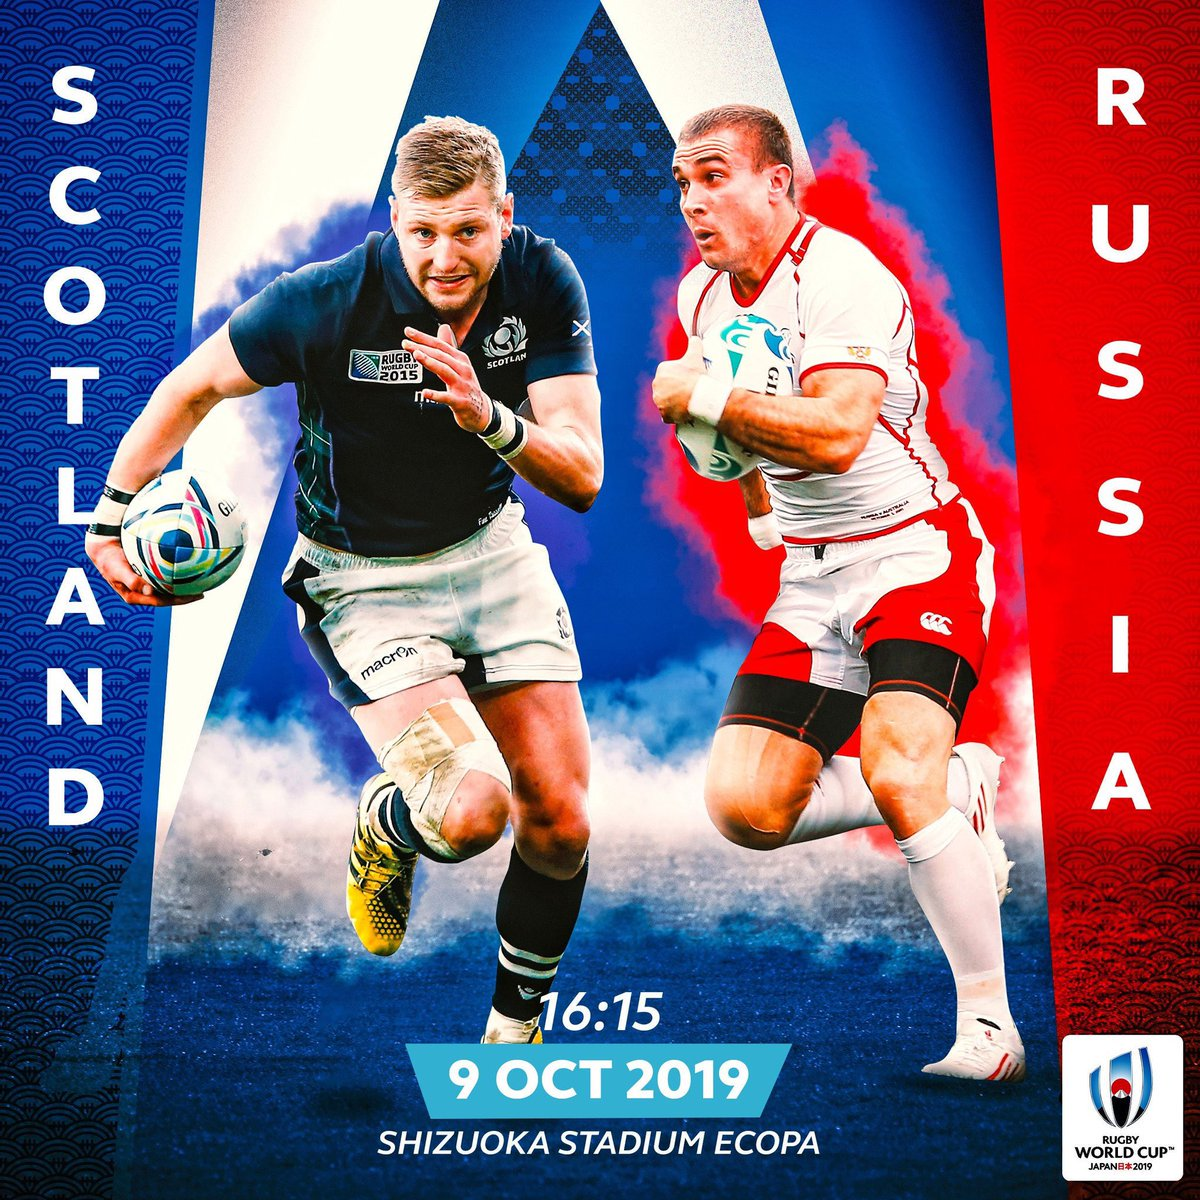 test Twitter Media - The first come, first served #RWC2019 ticketing window is still open.   Match Focus 🔍  @Scotlandteam v @russiarugby  📍 Shizuoka Stadium Ecopa  🗓 09 Oct, 16:15hrs (GMT+9)  https://t.co/wiftbbRu2B https://t.co/omWDSp0Fy8